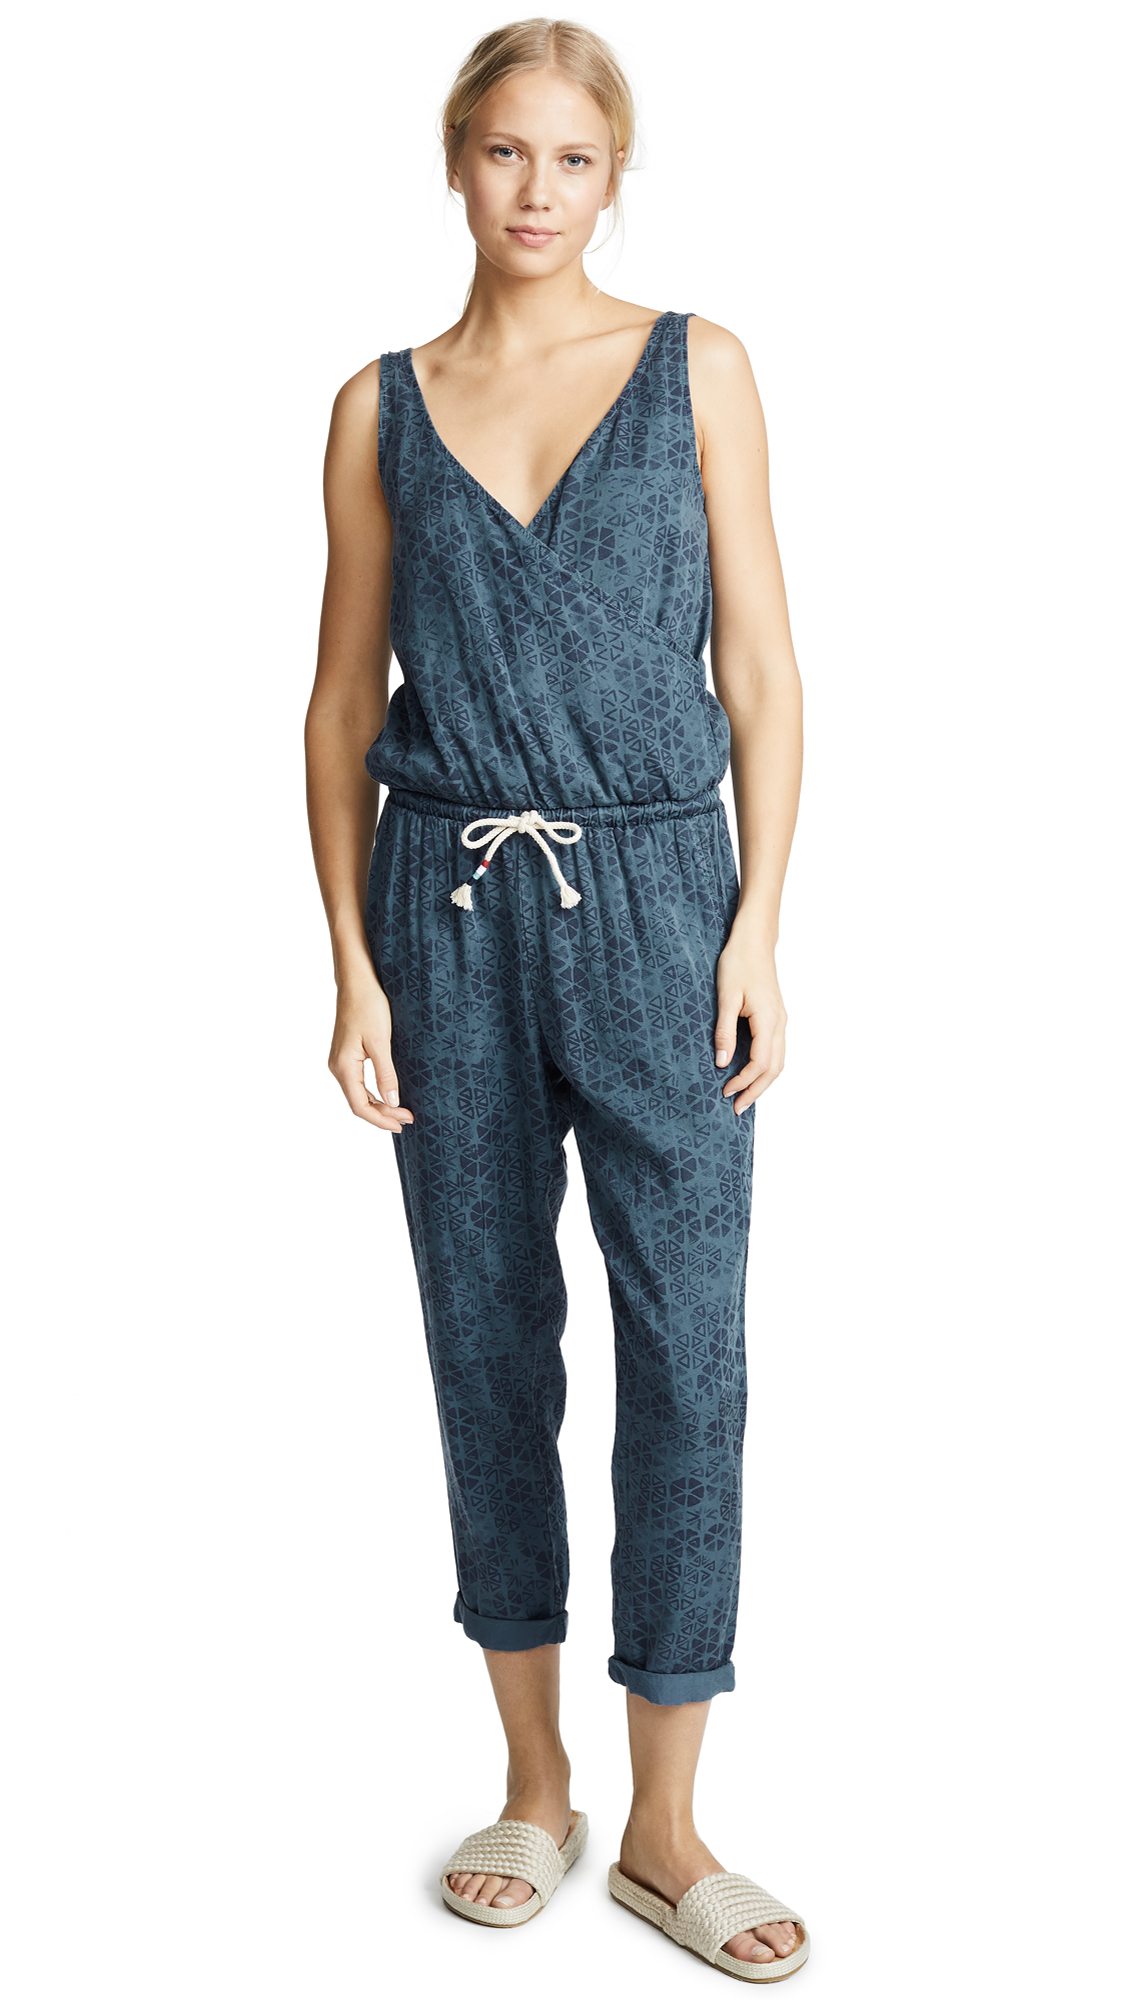 Sol Angeles Talavera Woven Jumpsuit In Talavera